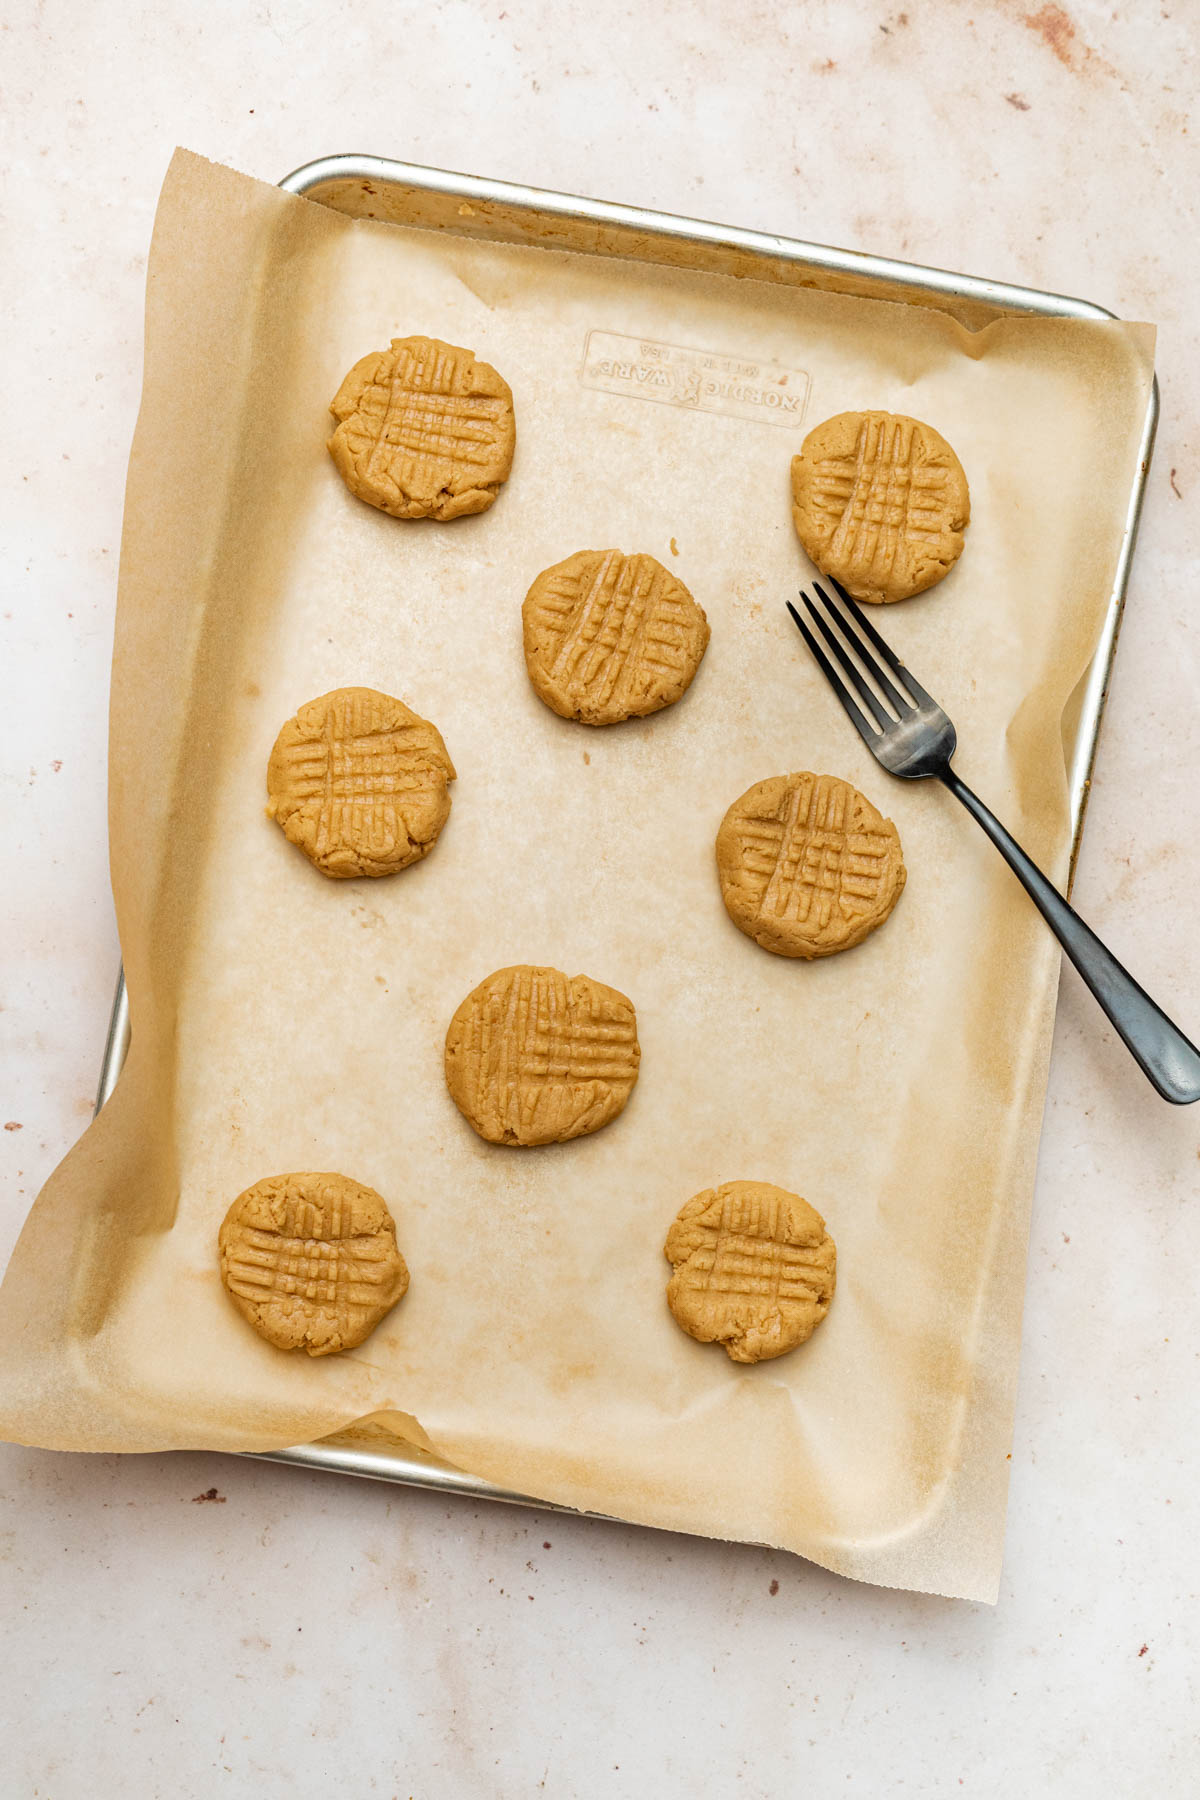 Cookies pressed with a fork for a crosshatch pattern.